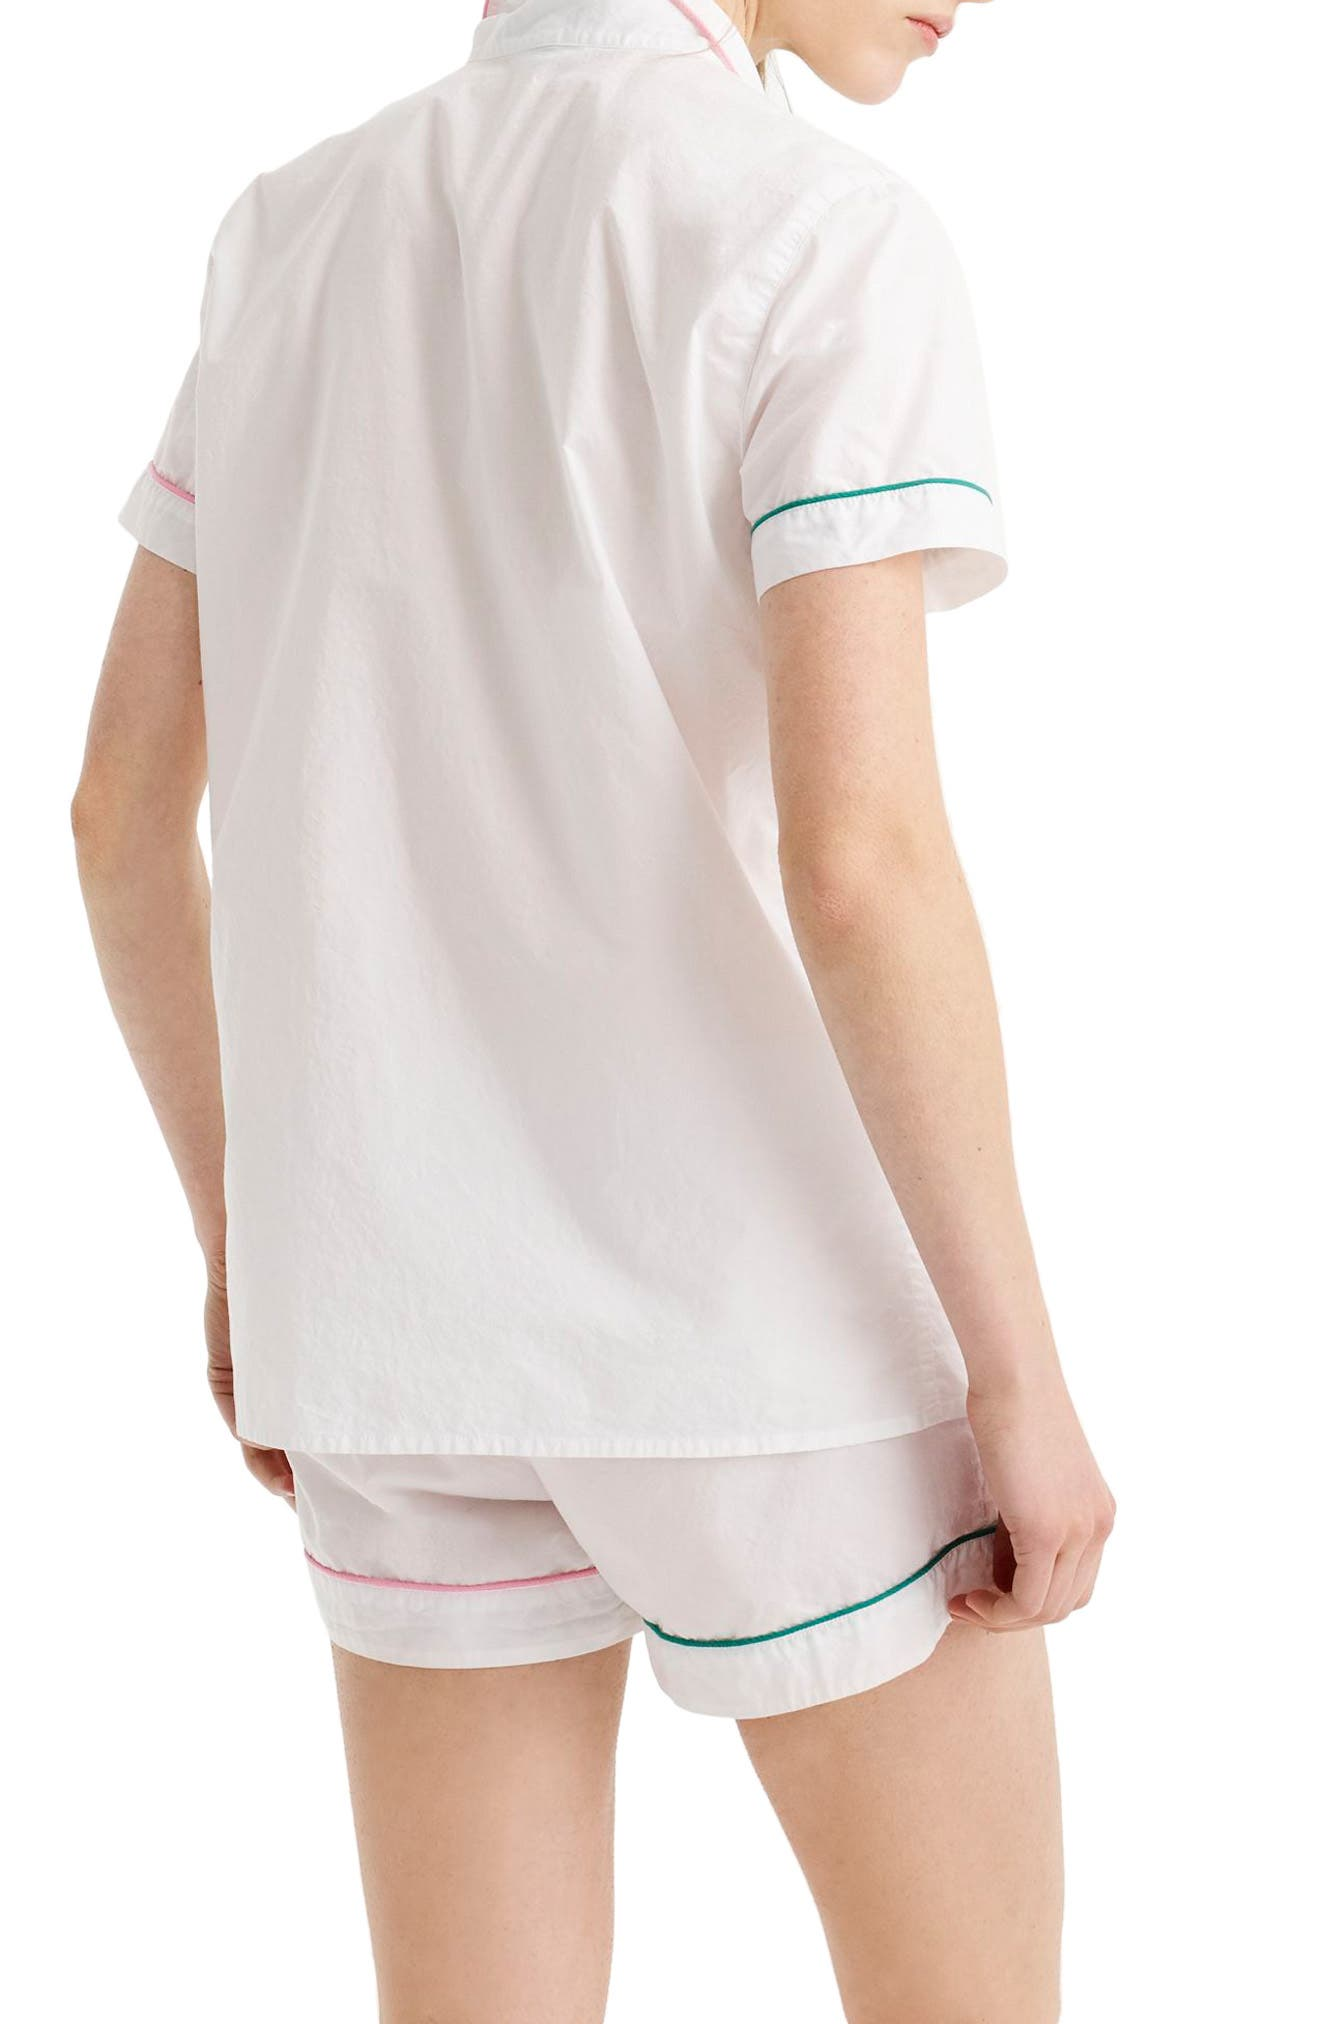 Tipped Short Cotton Pajamas,                             Alternate thumbnail 2, color,                             106